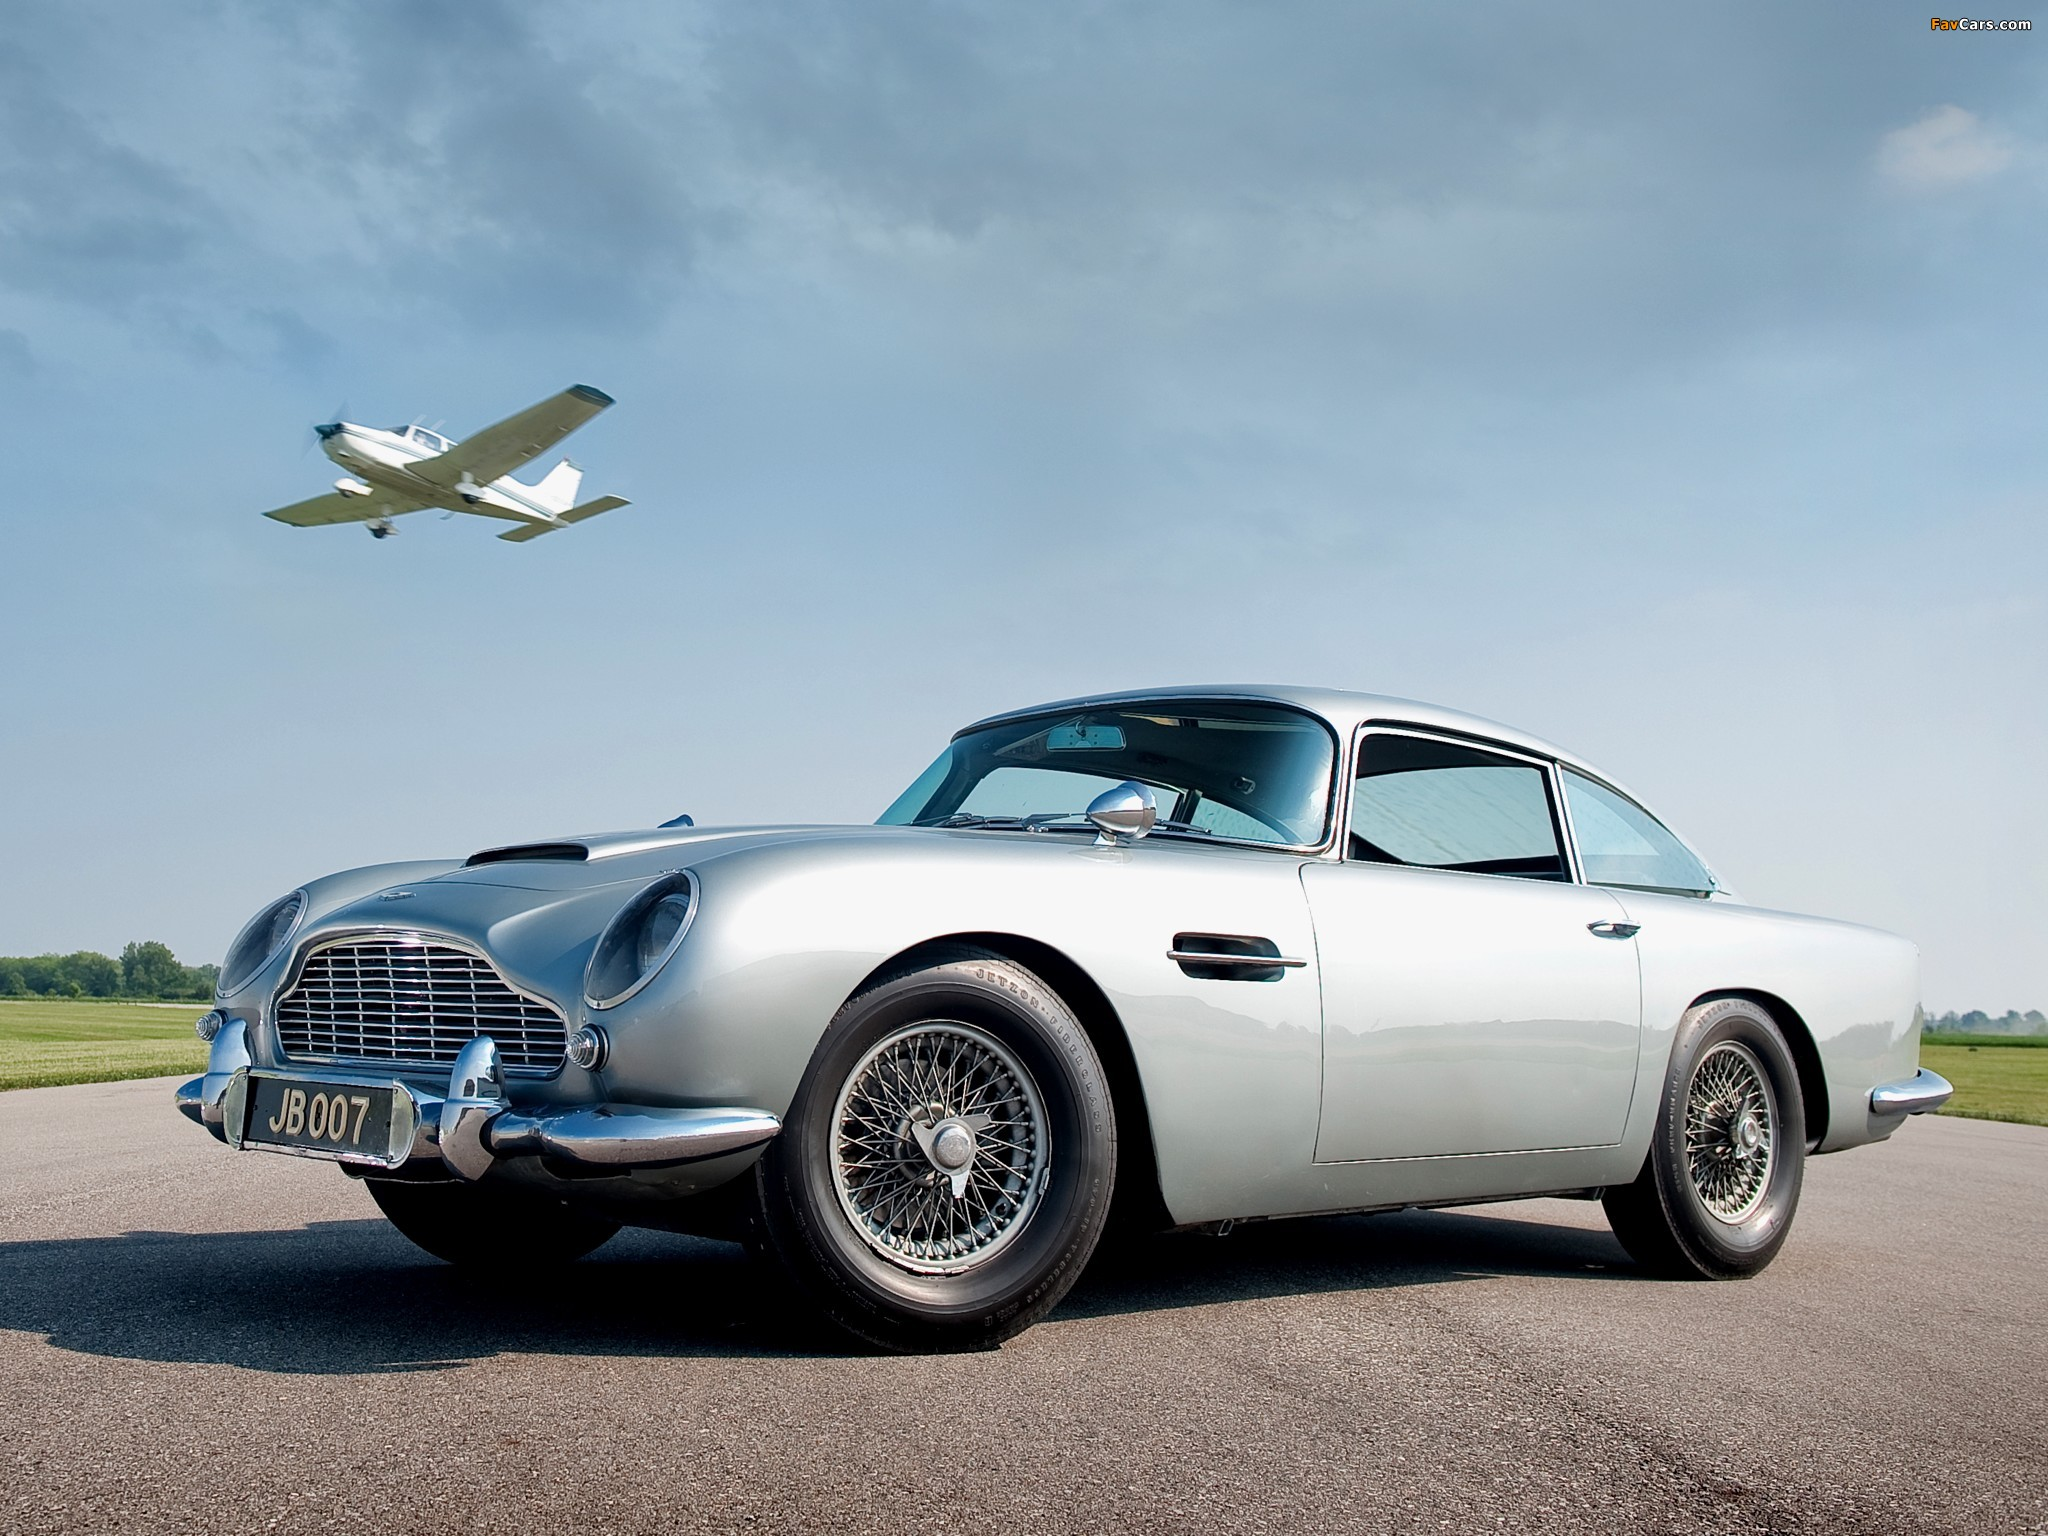 aston martin db5 james bond edition 1964 pictures. Cars Review. Best American Auto & Cars Review